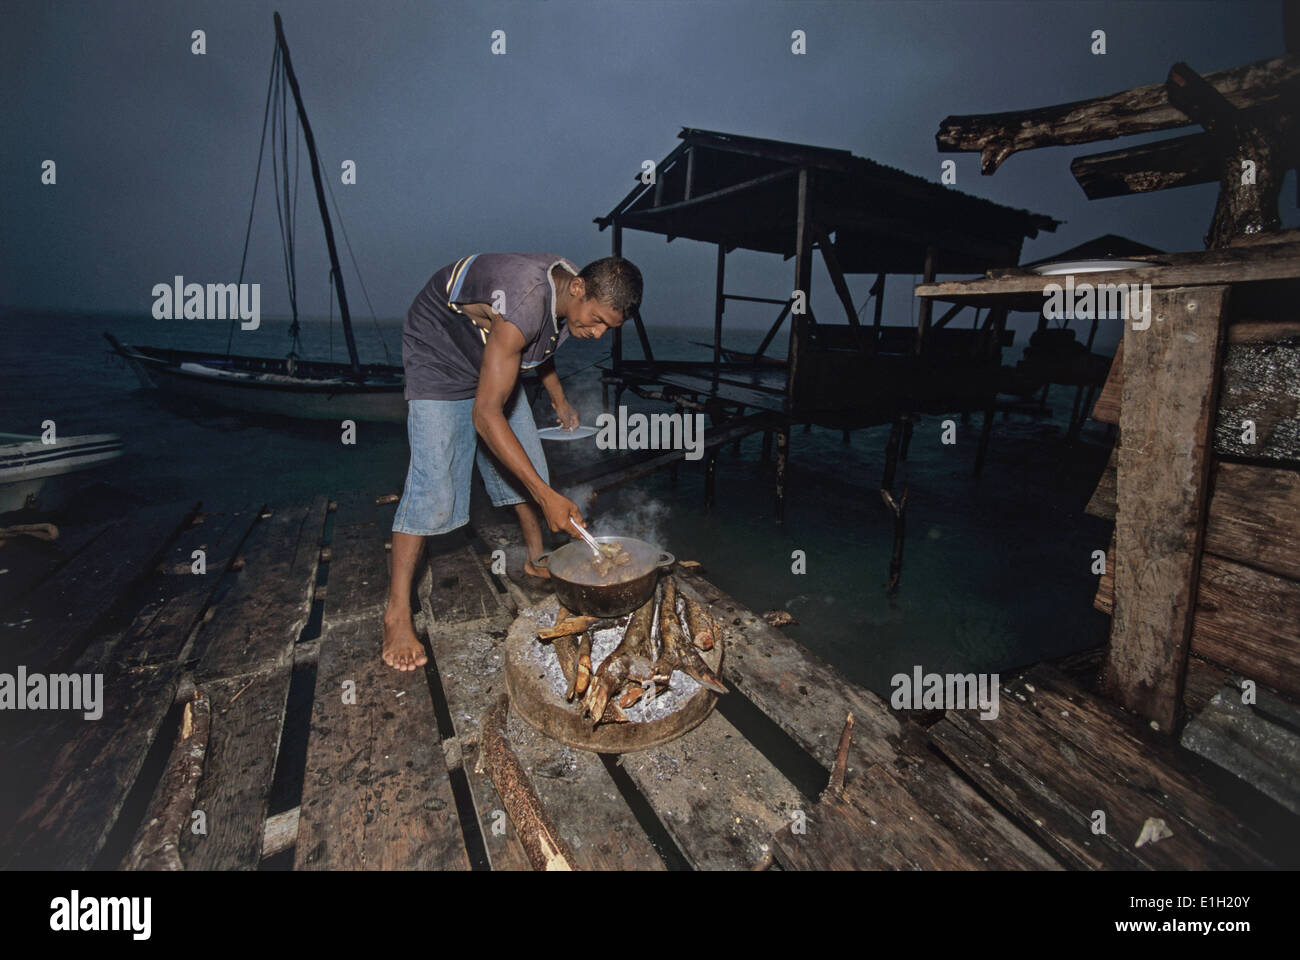 Miskito Indian fisherman cooking Green Turtle (Chelonia mydas) meat, Puerto Cabezas, Nicaragua - Caribbean Sea. Stock Photo